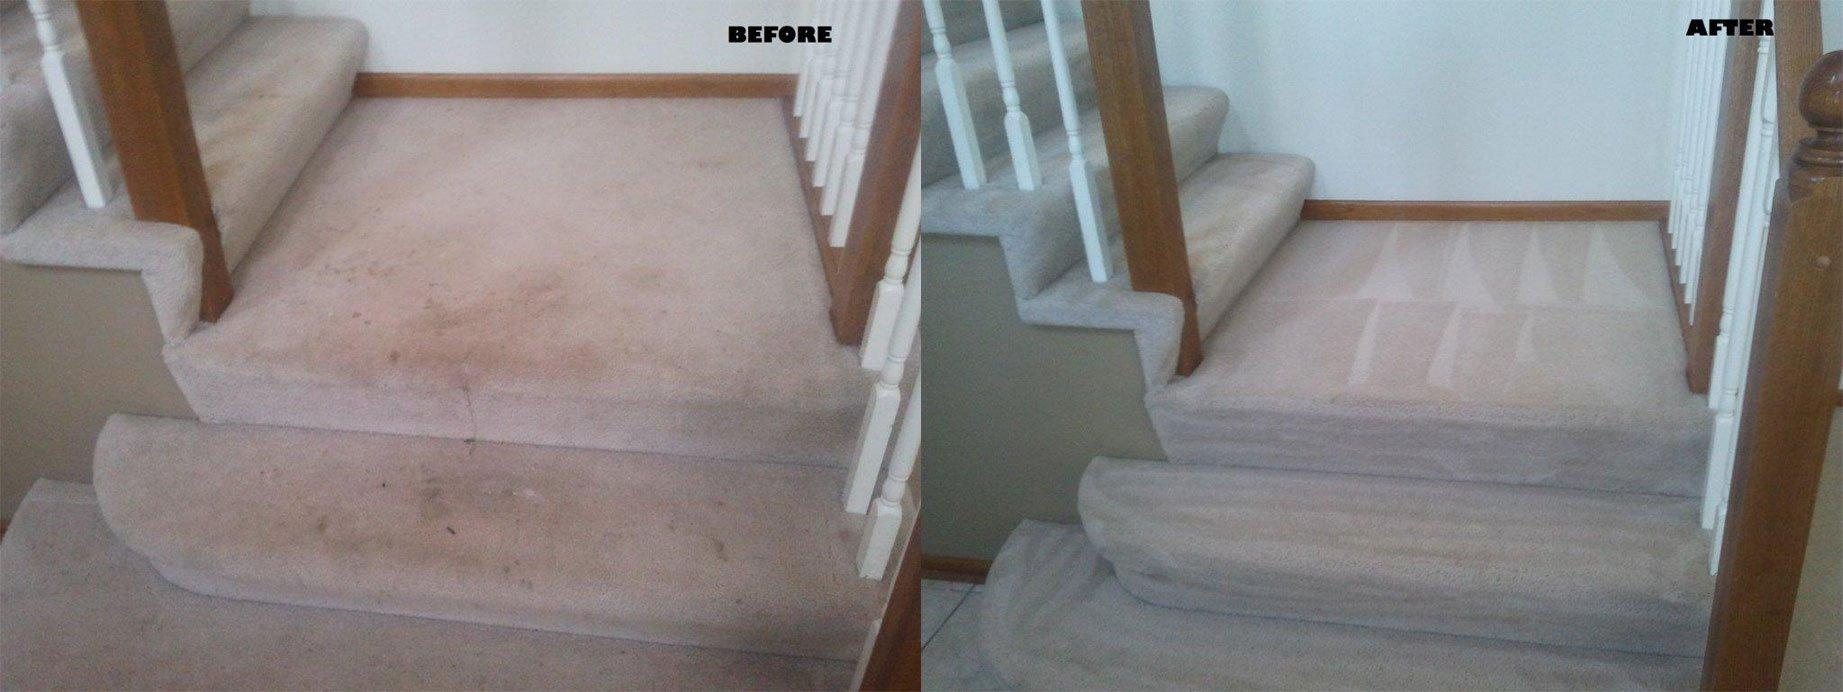 After Hourzzz Plus Carpet Cleaning image 1